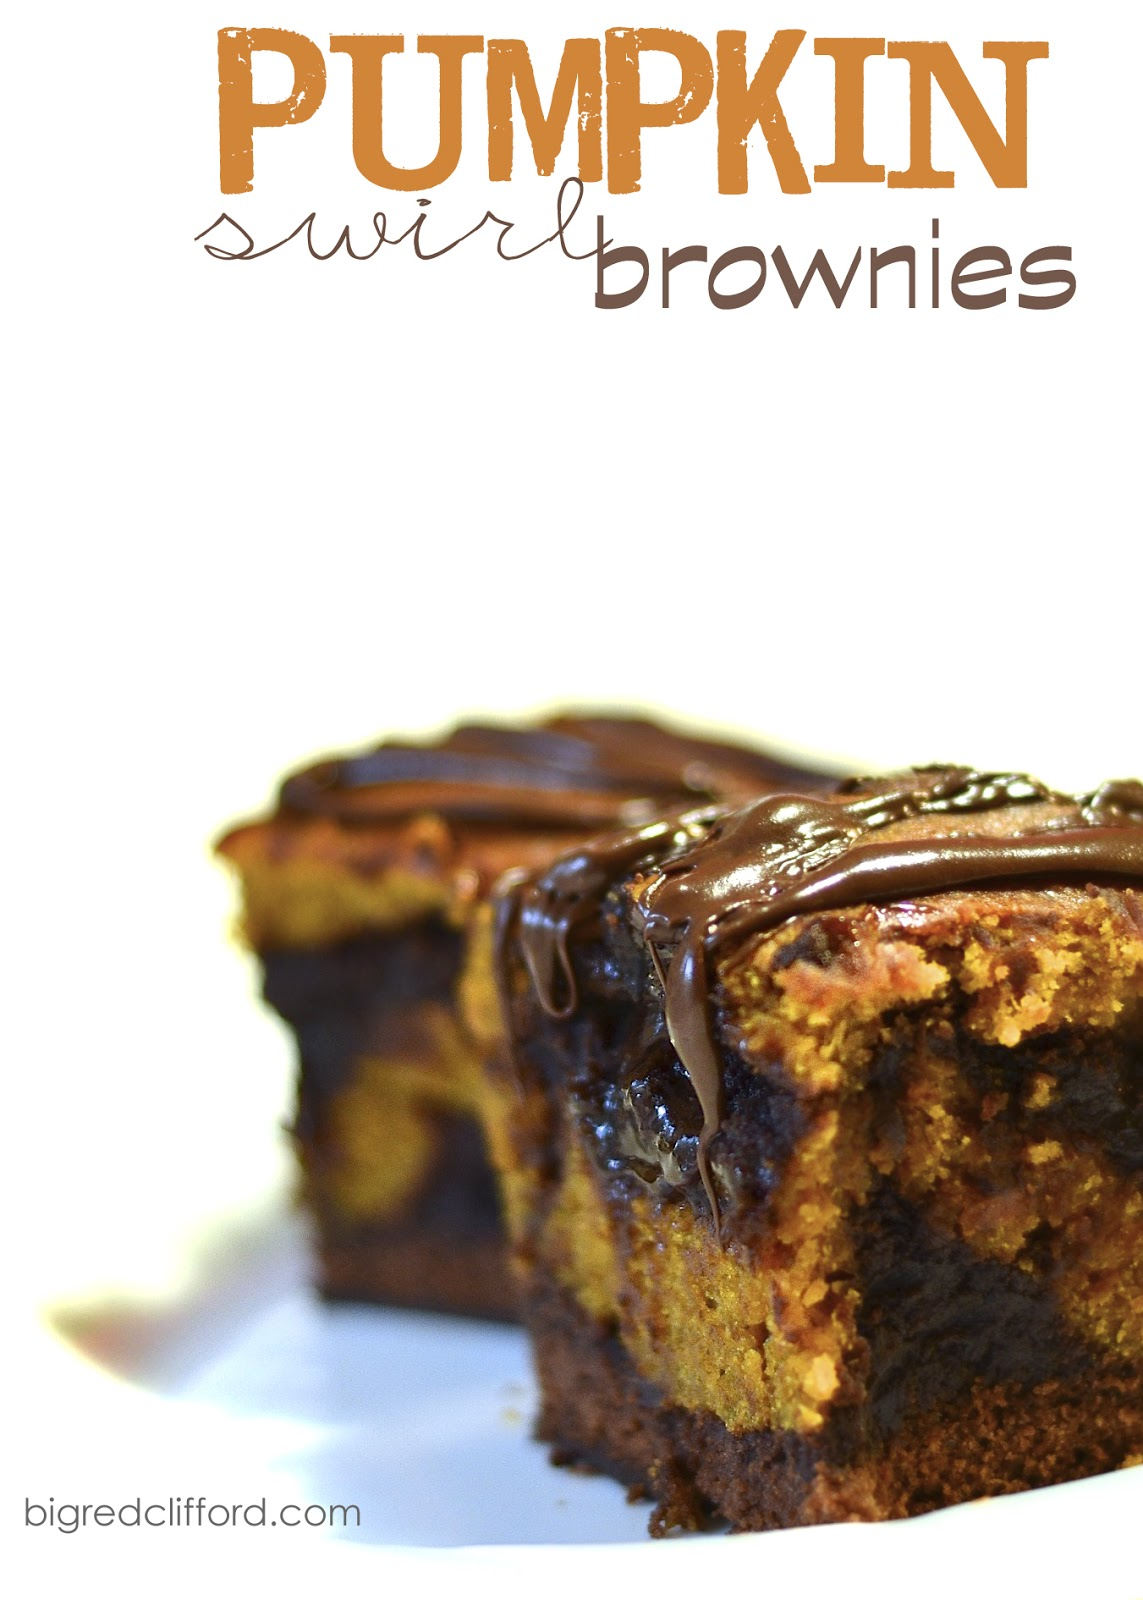 naughty pumpkin swirl brownies | Color Me Meg